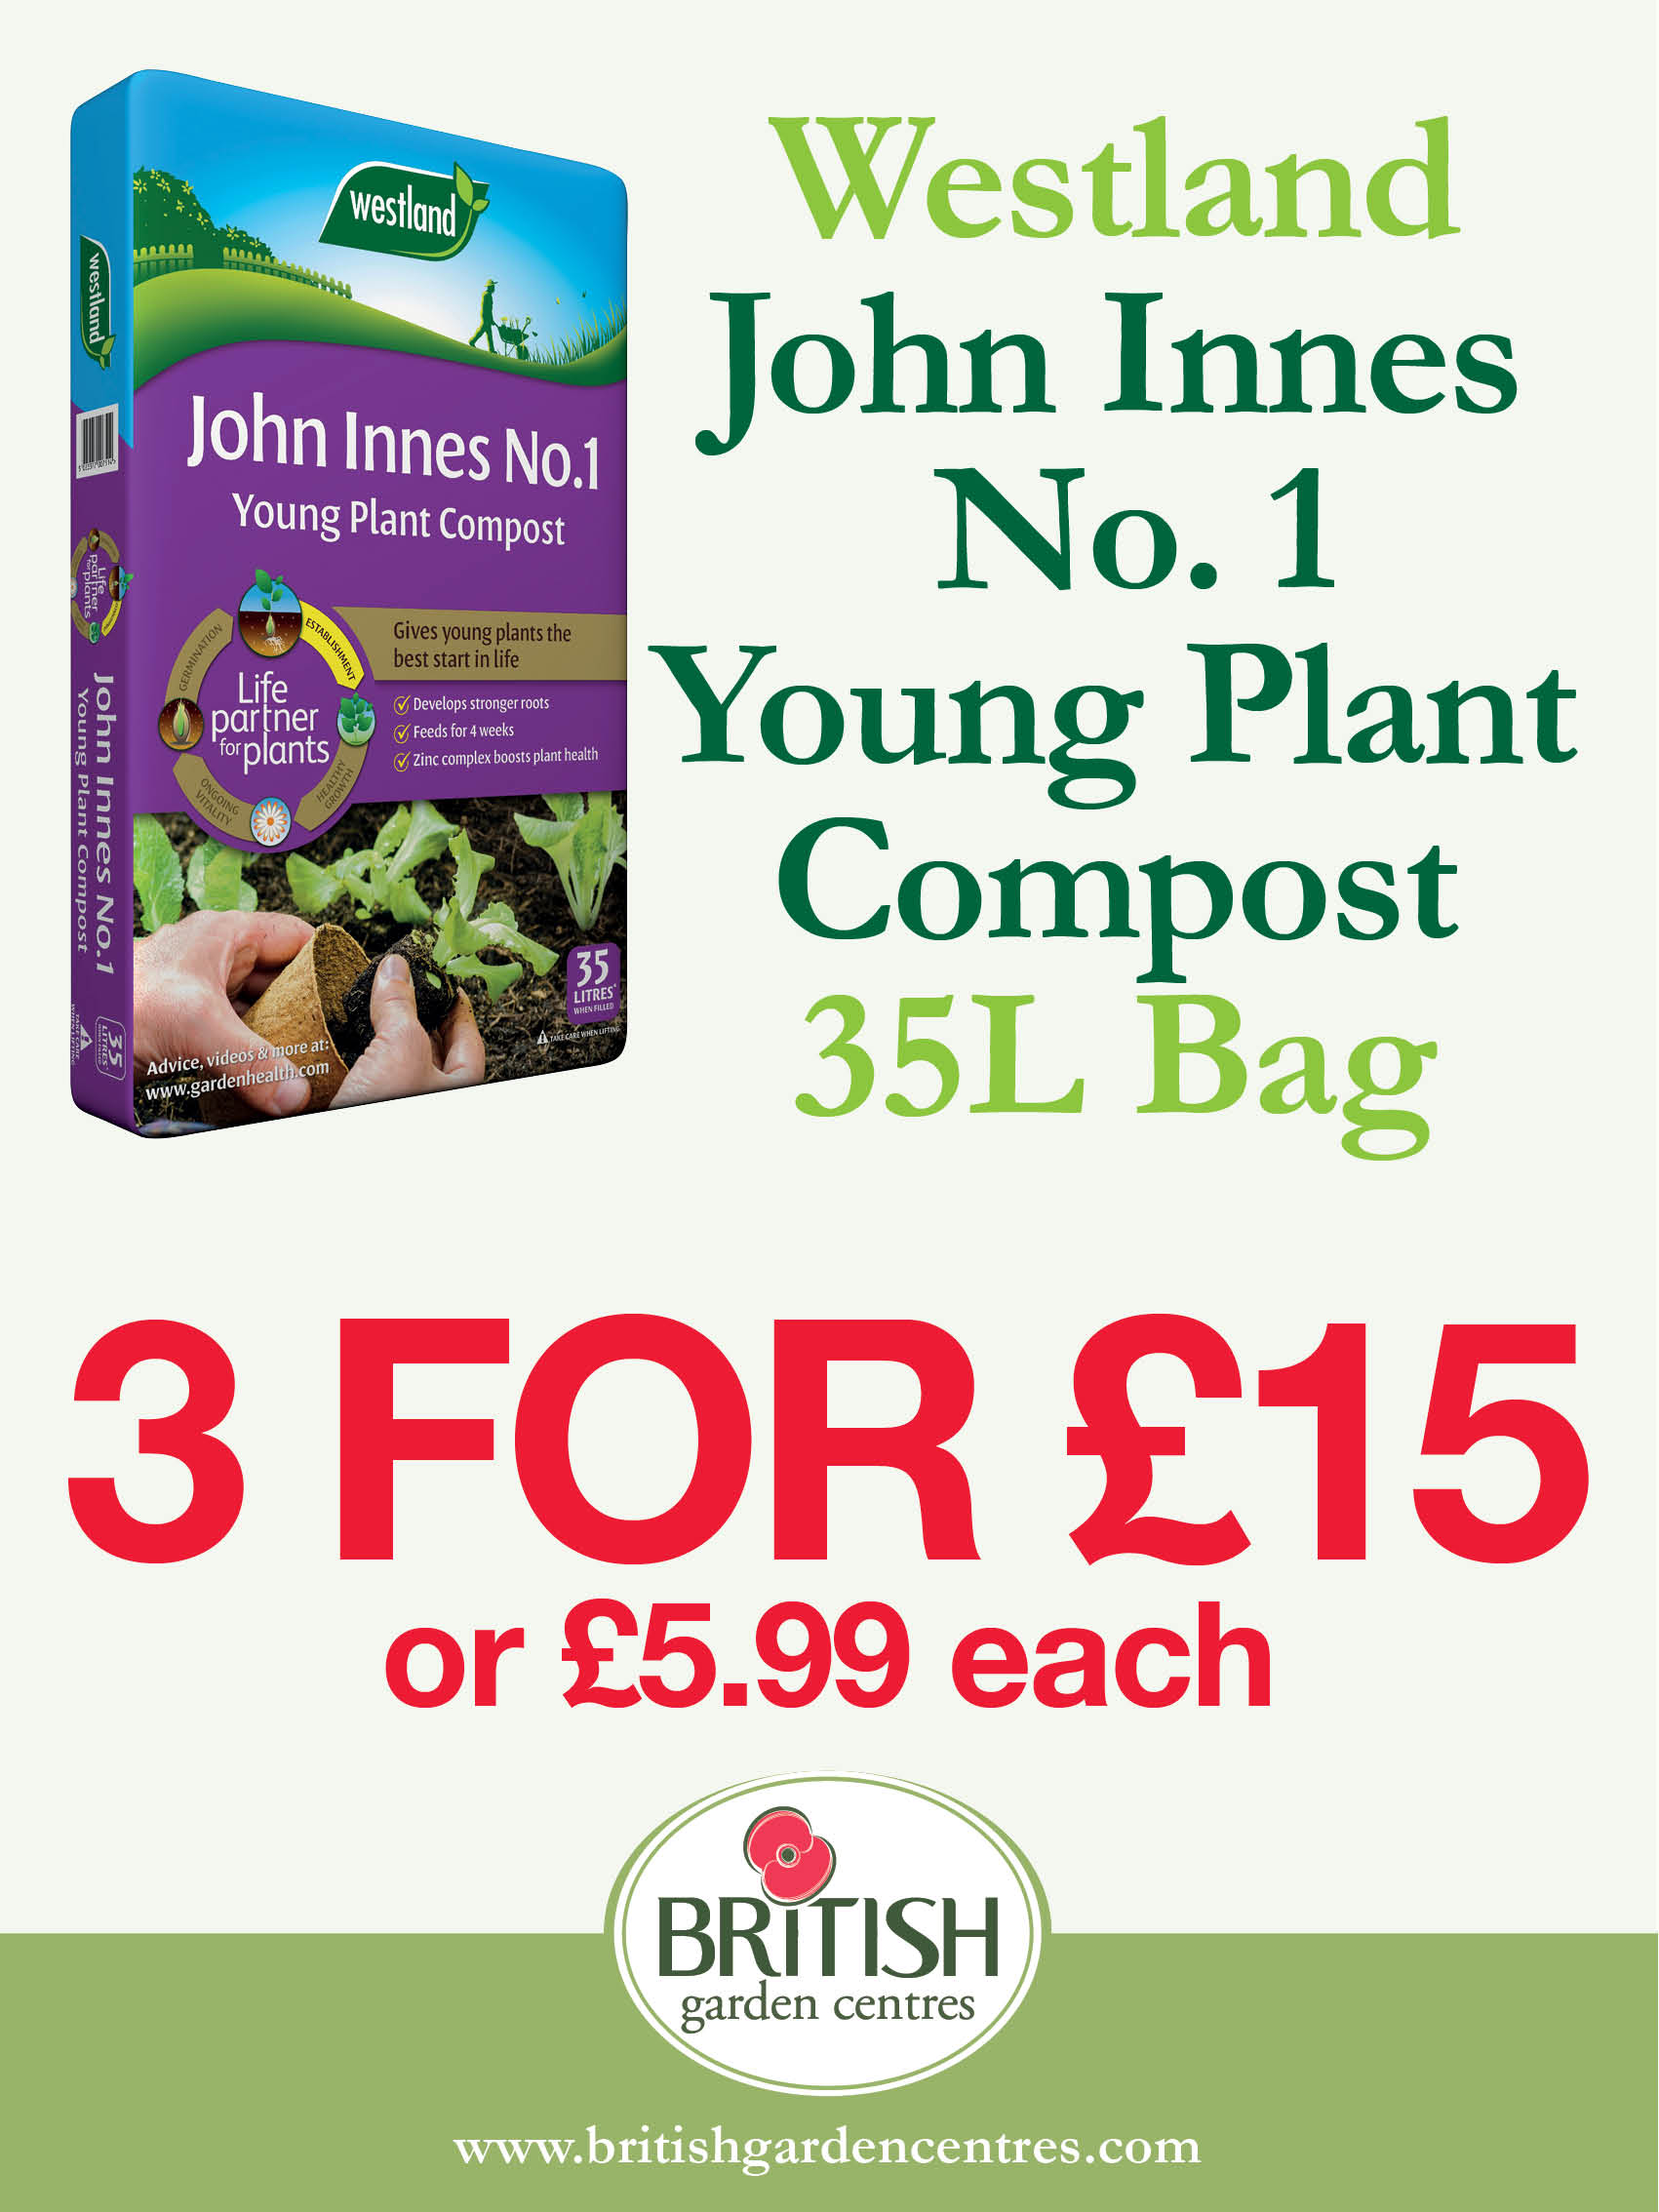 John Innes No. 1 Young Plant Compost 35L